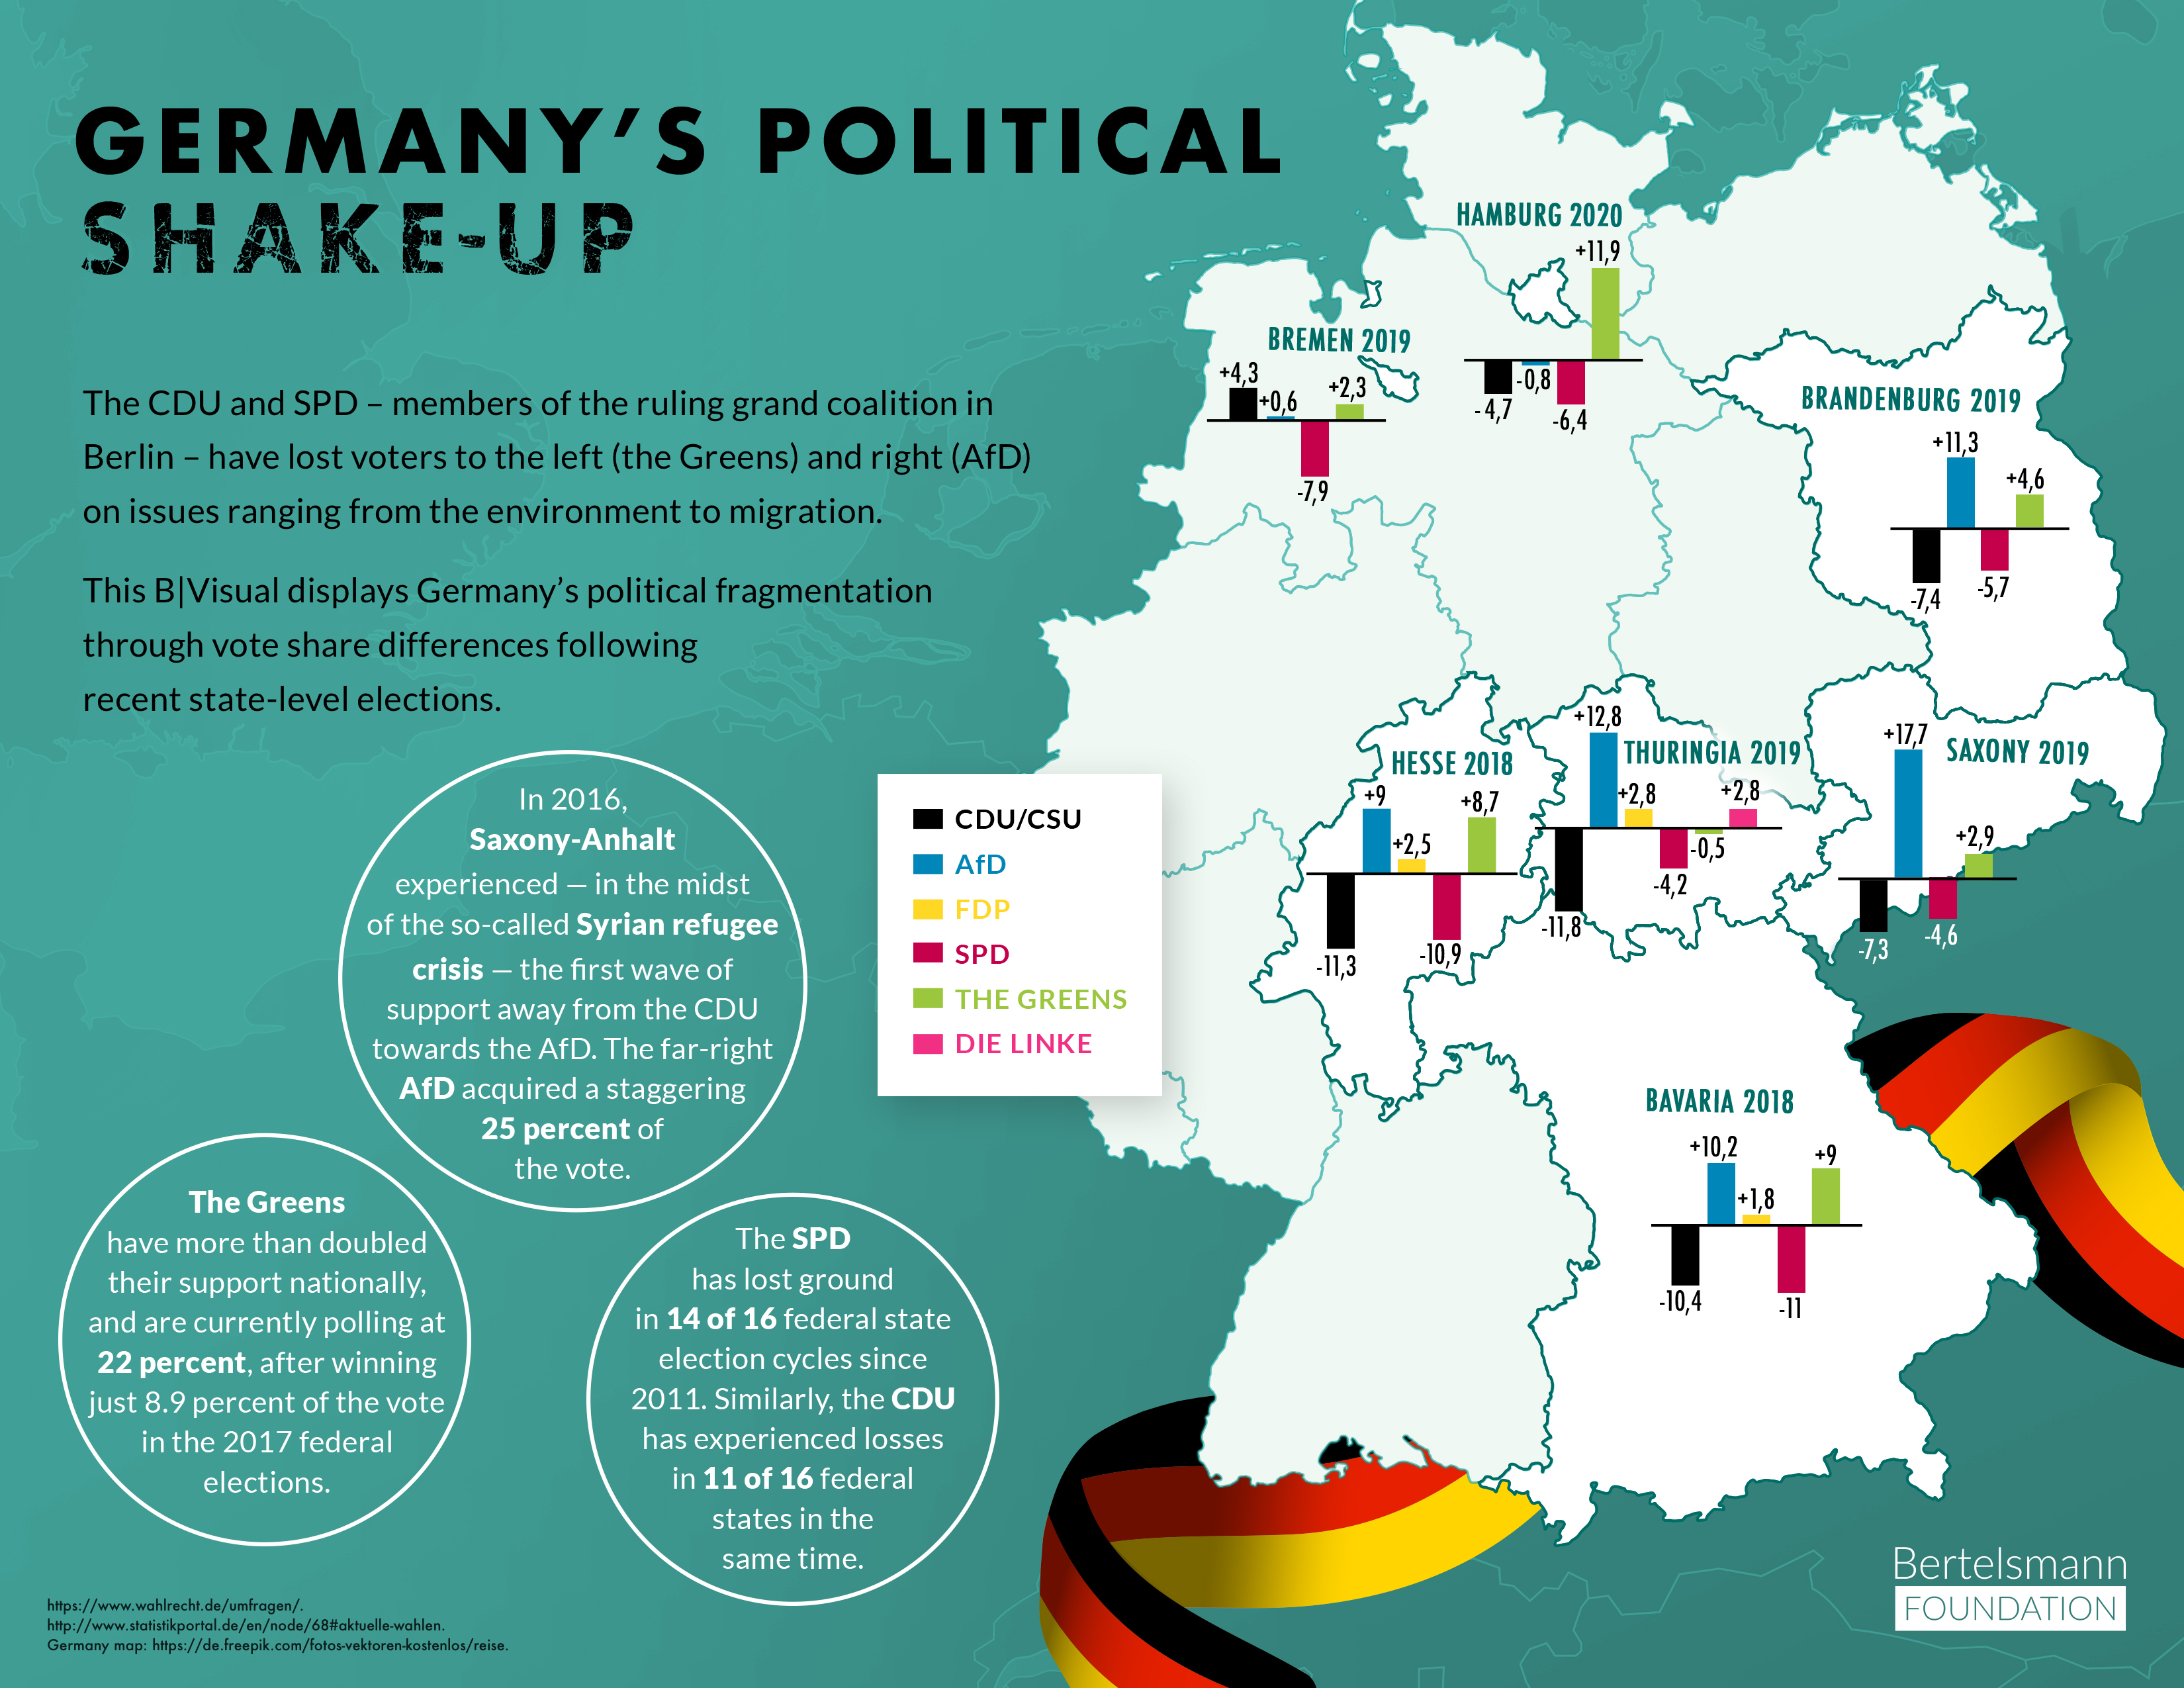 Germany's Political Shake-Up